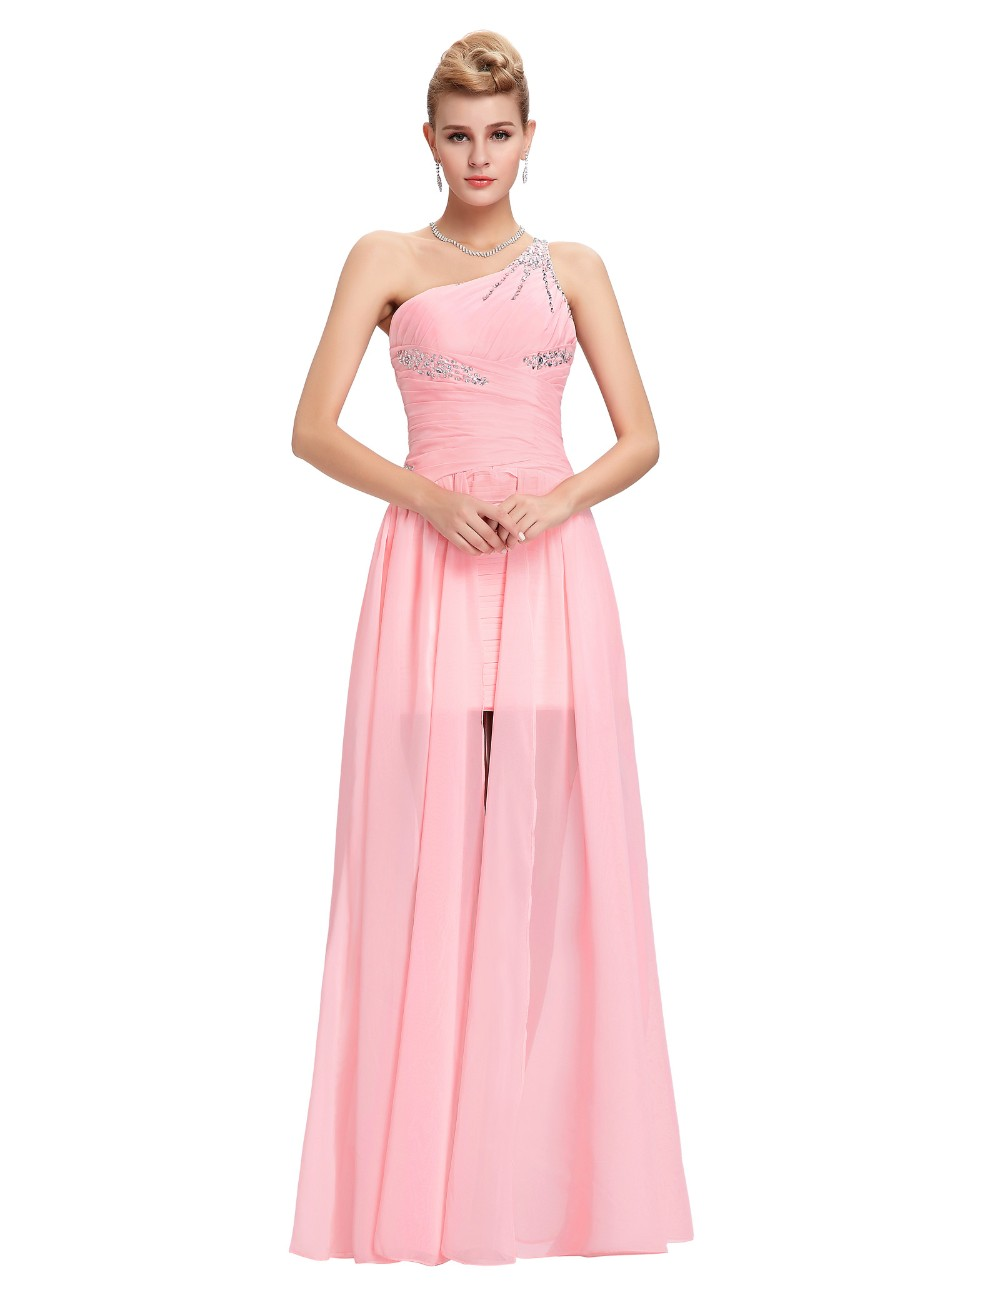 Light Pink Bridesmaid Dresses Grace Karin Beaded Chiffon One Shoulder Formal Gowns Short Front Long Back Wedding Party Dresses 7